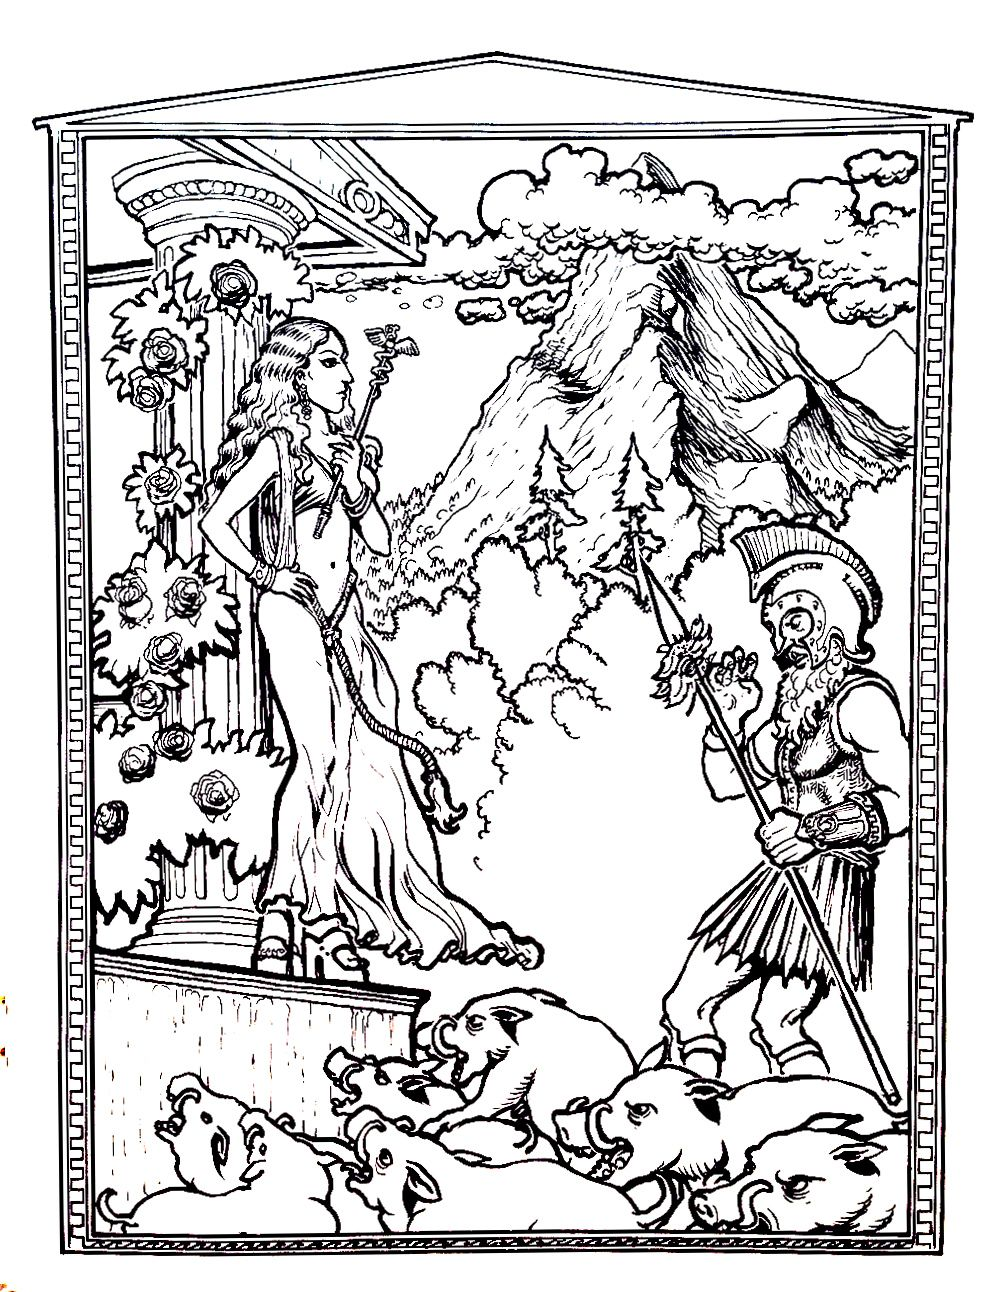 Myths And Legends Have Always Fascinated Inspired Many Books Films TV Series Coloring Pages For AdultsFree